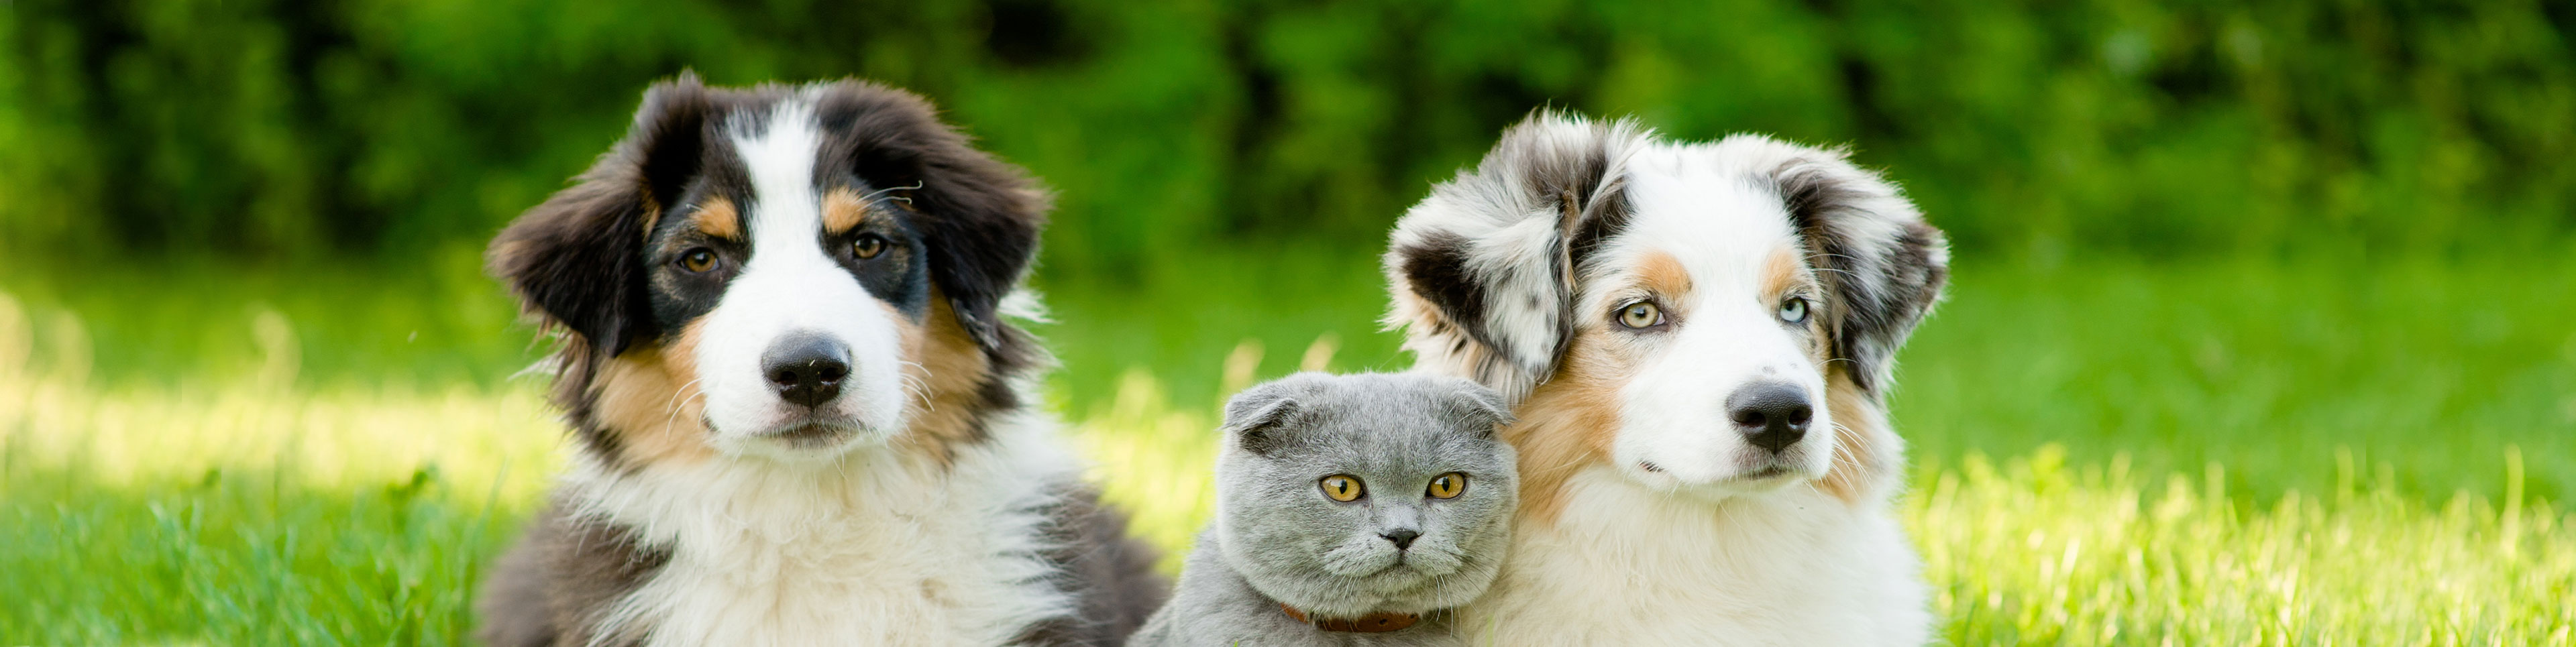 Close-Up of two Dogs and a Cat Outdoors | Taste of the Wild.